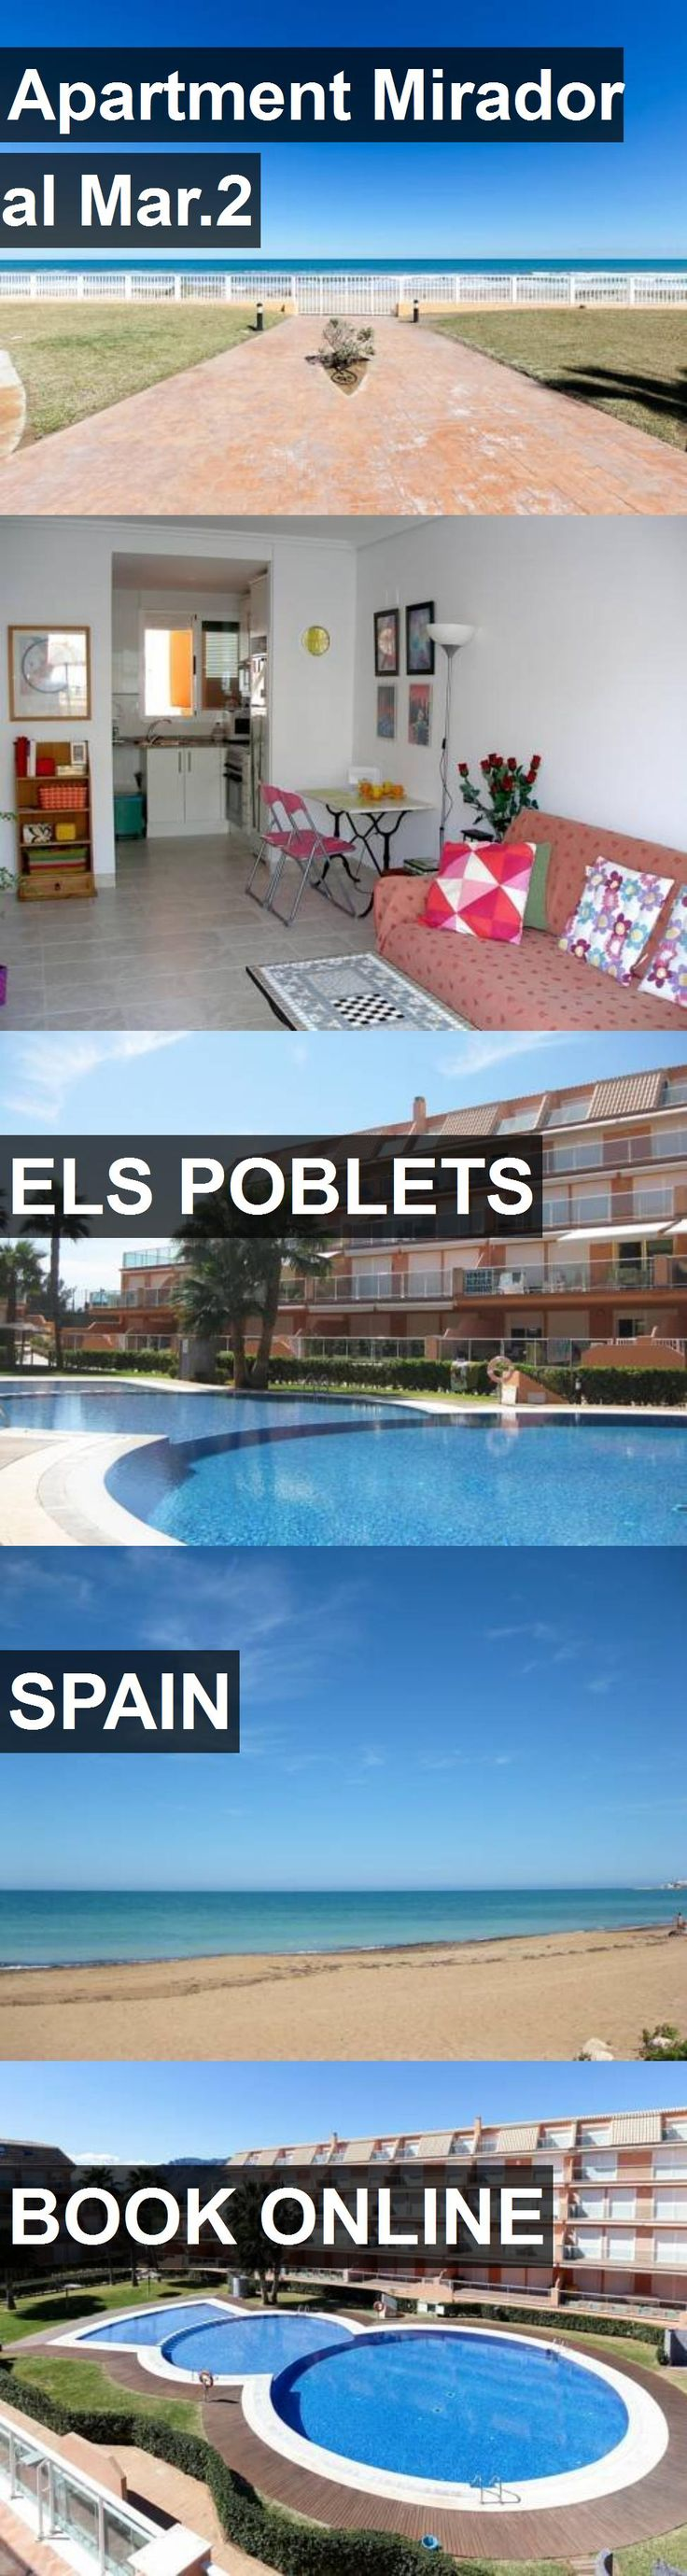 Hotel Apartment Mirador al Mar.2 in Els Poblets, Spain. For more information, photos, reviews and best prices please follow the link. #Spain #ElsPoblets #ApartmentMiradoralMar.2 #hotel #travel #vacation